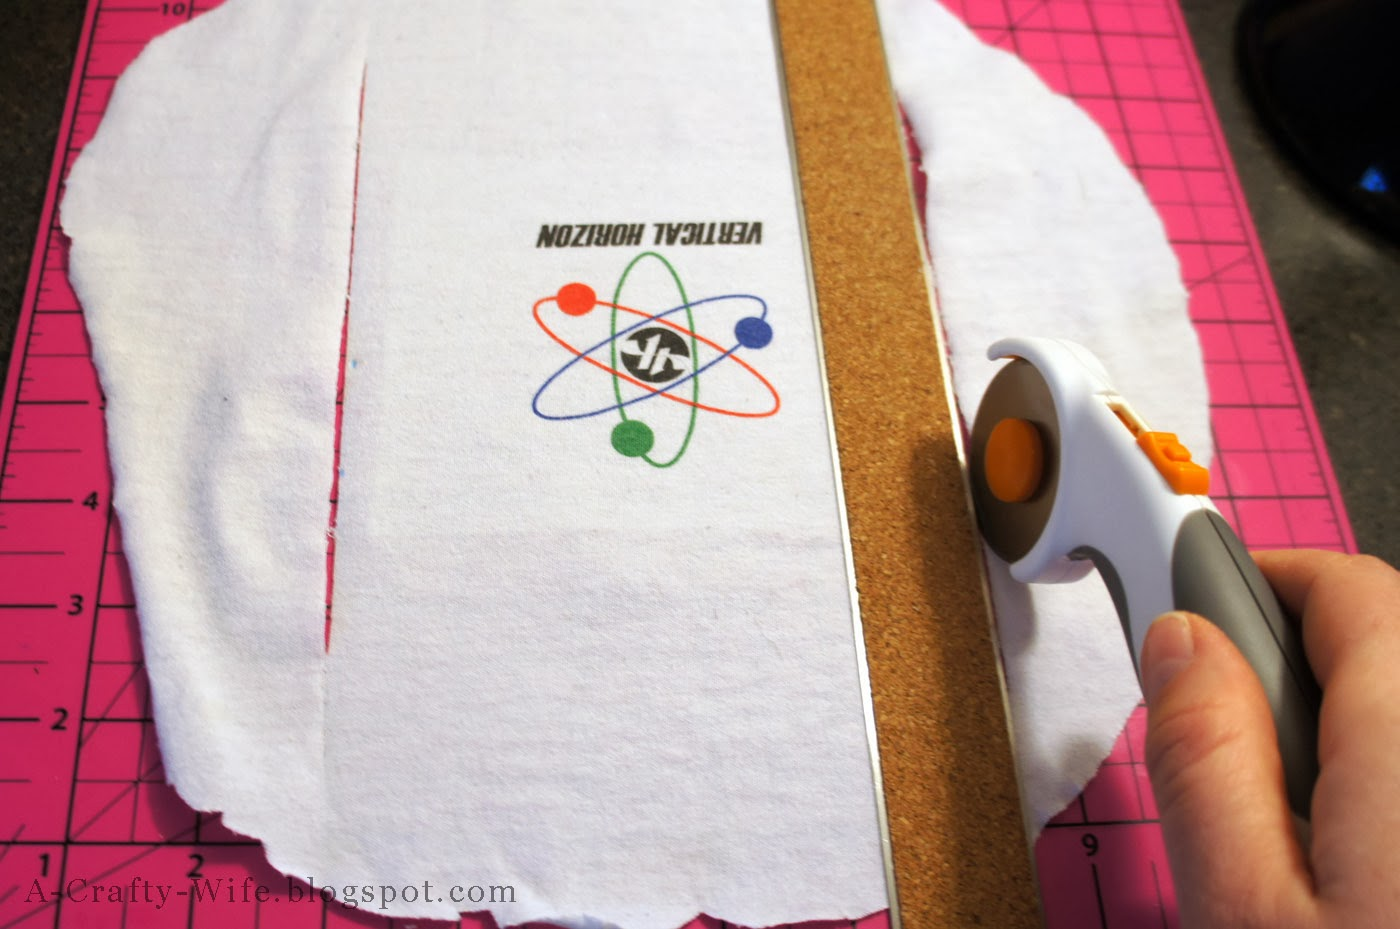 Use rotary cutter to trim tshirts to size before sewing | A Crafty Wife